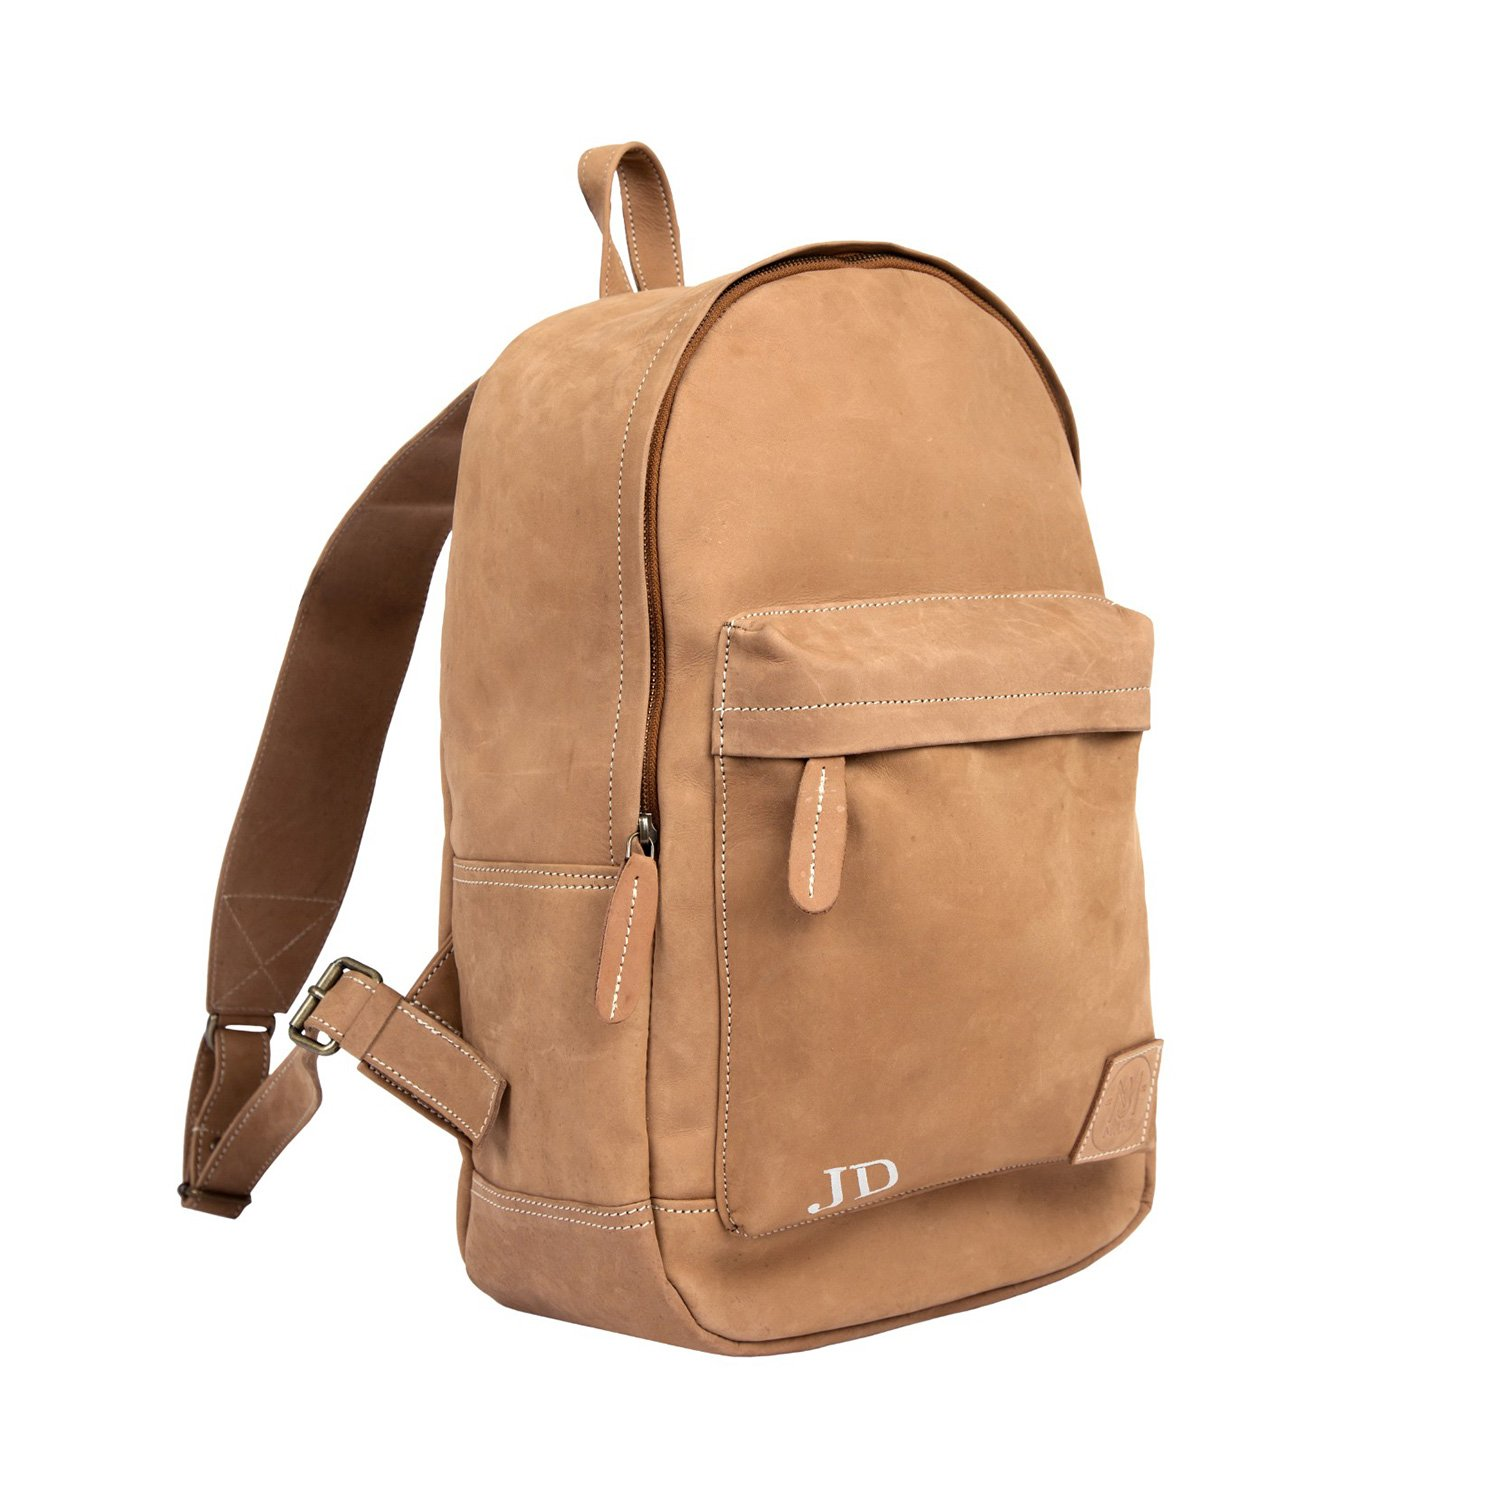 Backpack clipart side view. Suede leather for work